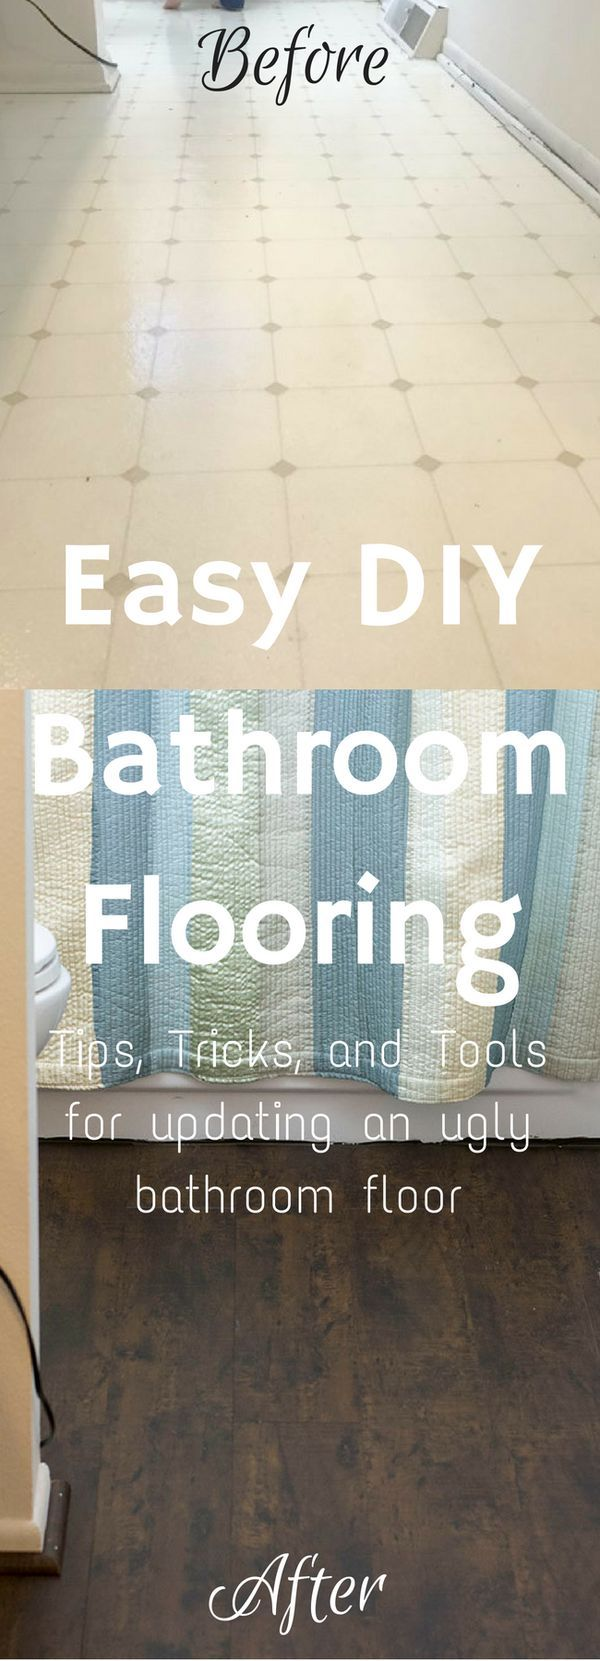 25 best ideas about cheap bathroom remodel on pinterest for Diy flooring ideas on a budget